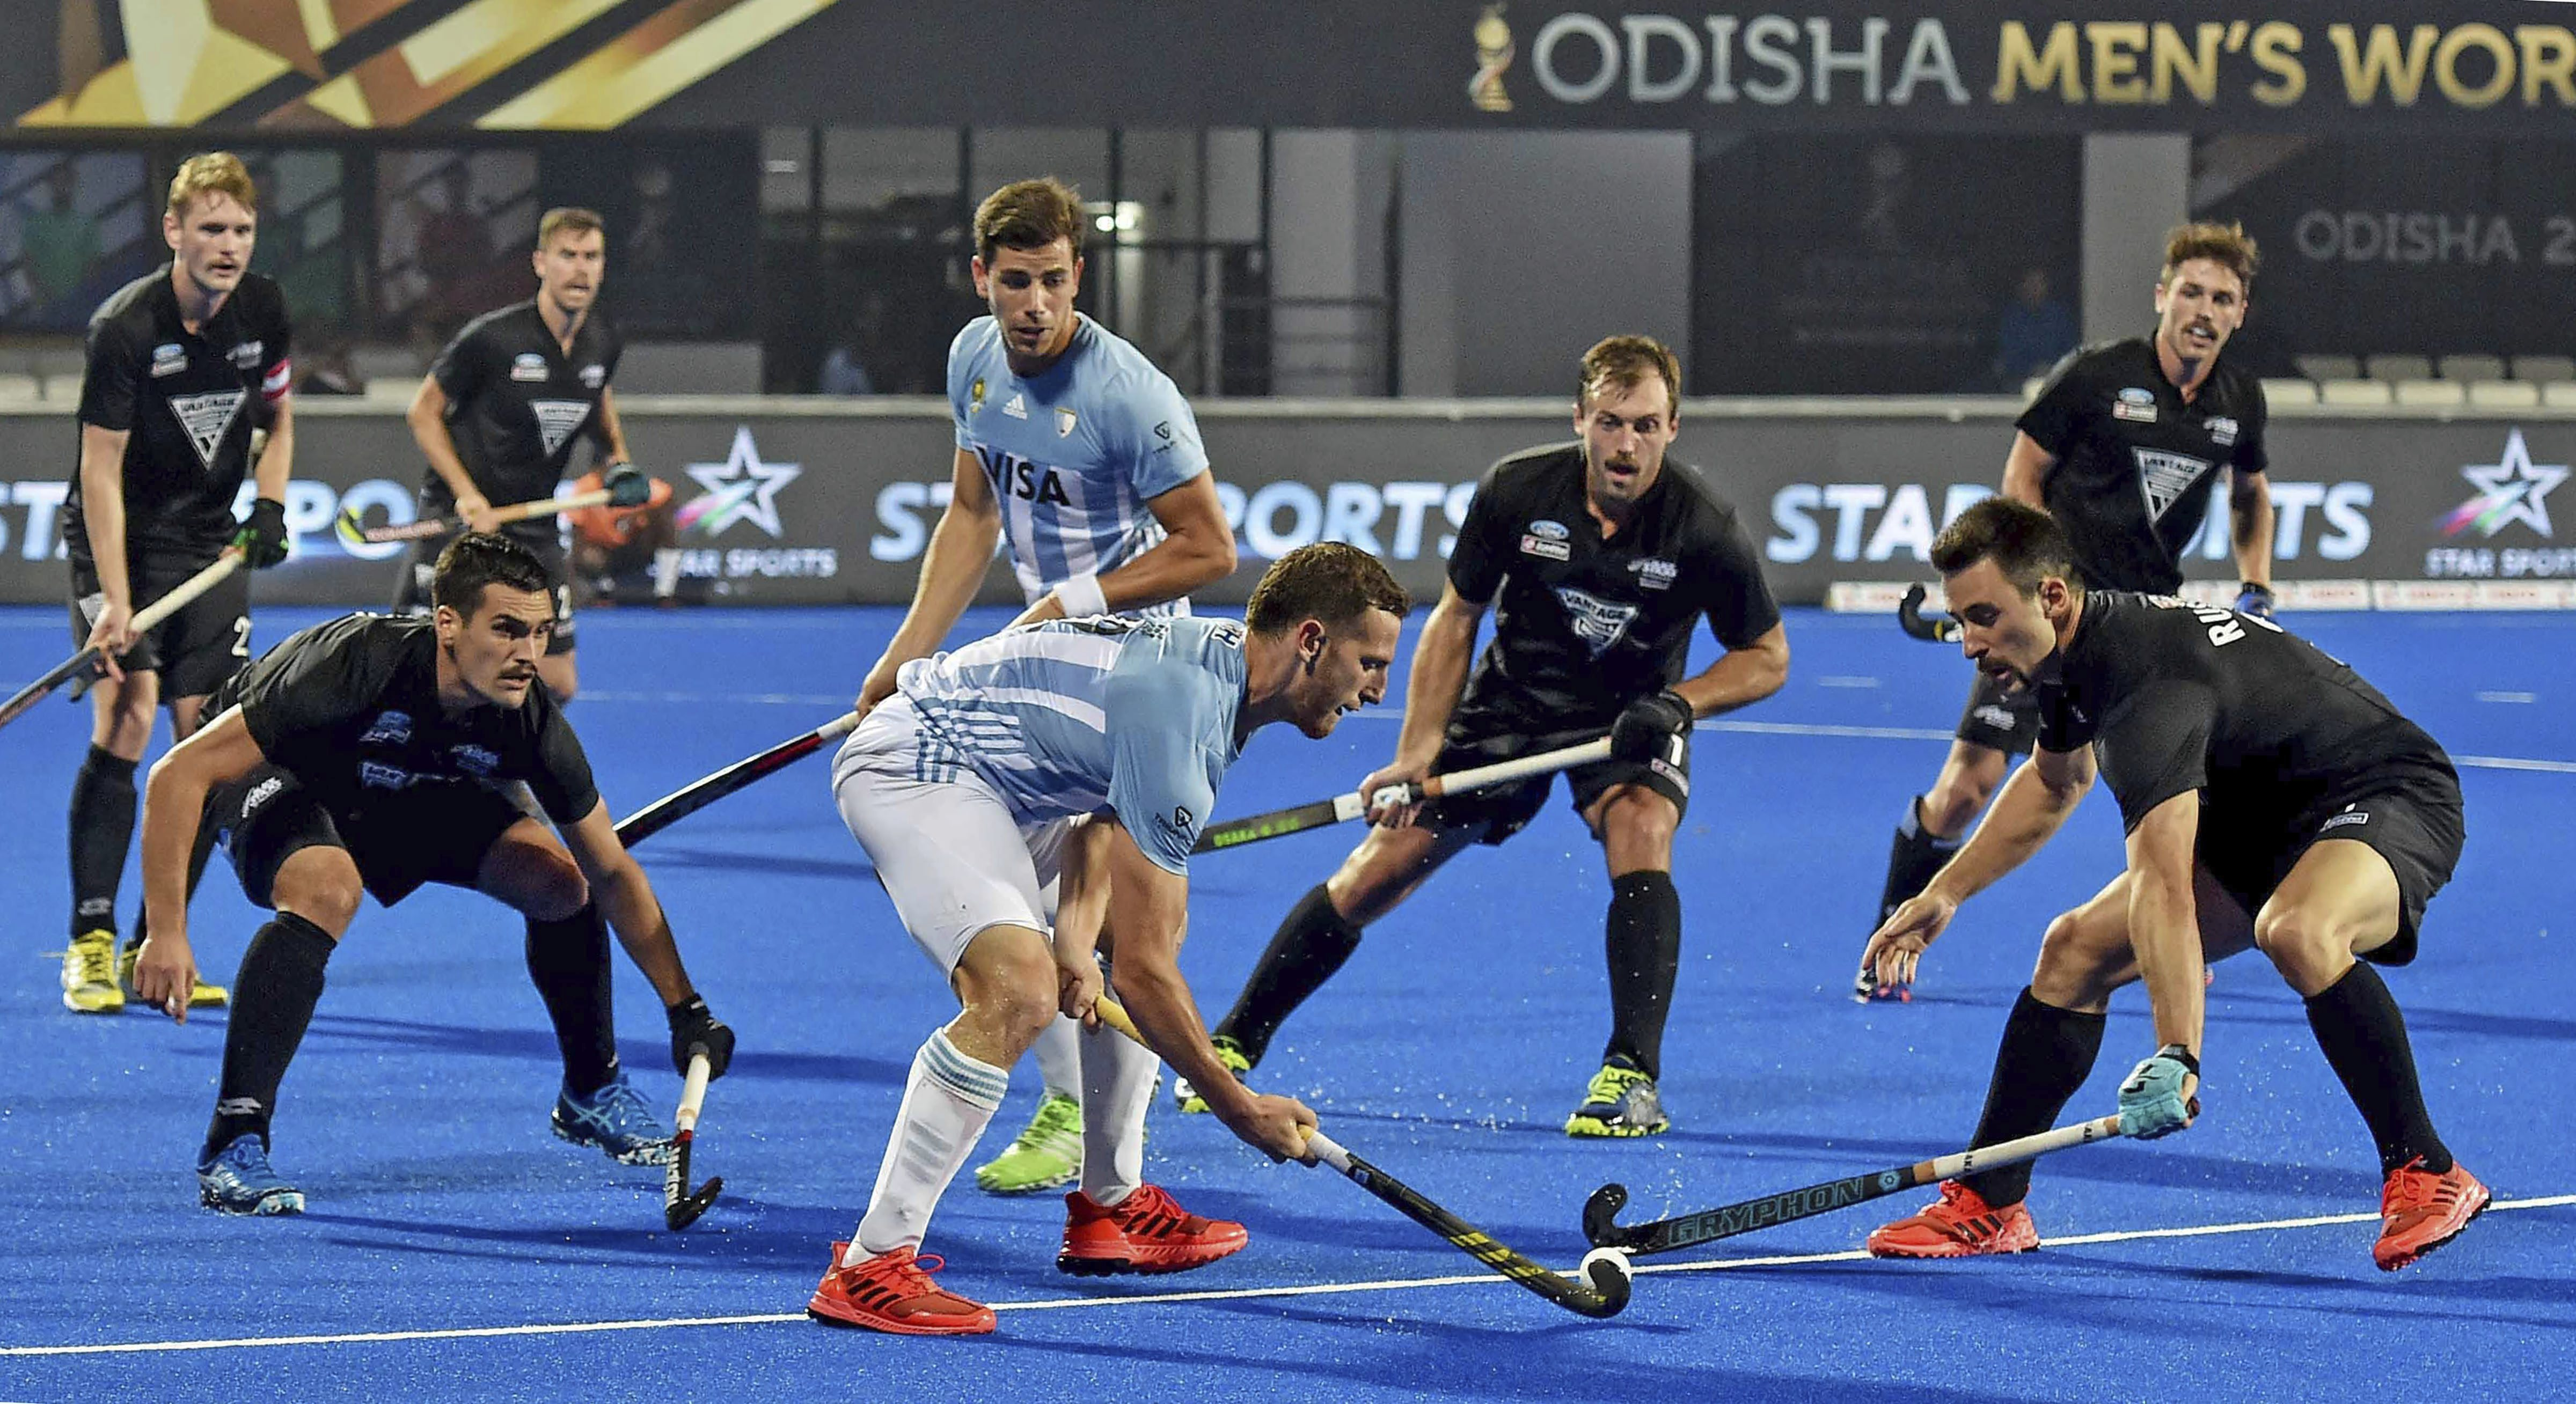 Lucas Vila (in blue) of Argentina in action during a match against New Zealand at Men's Hockey World Cup 2018, in Bhubaneswar - PTI